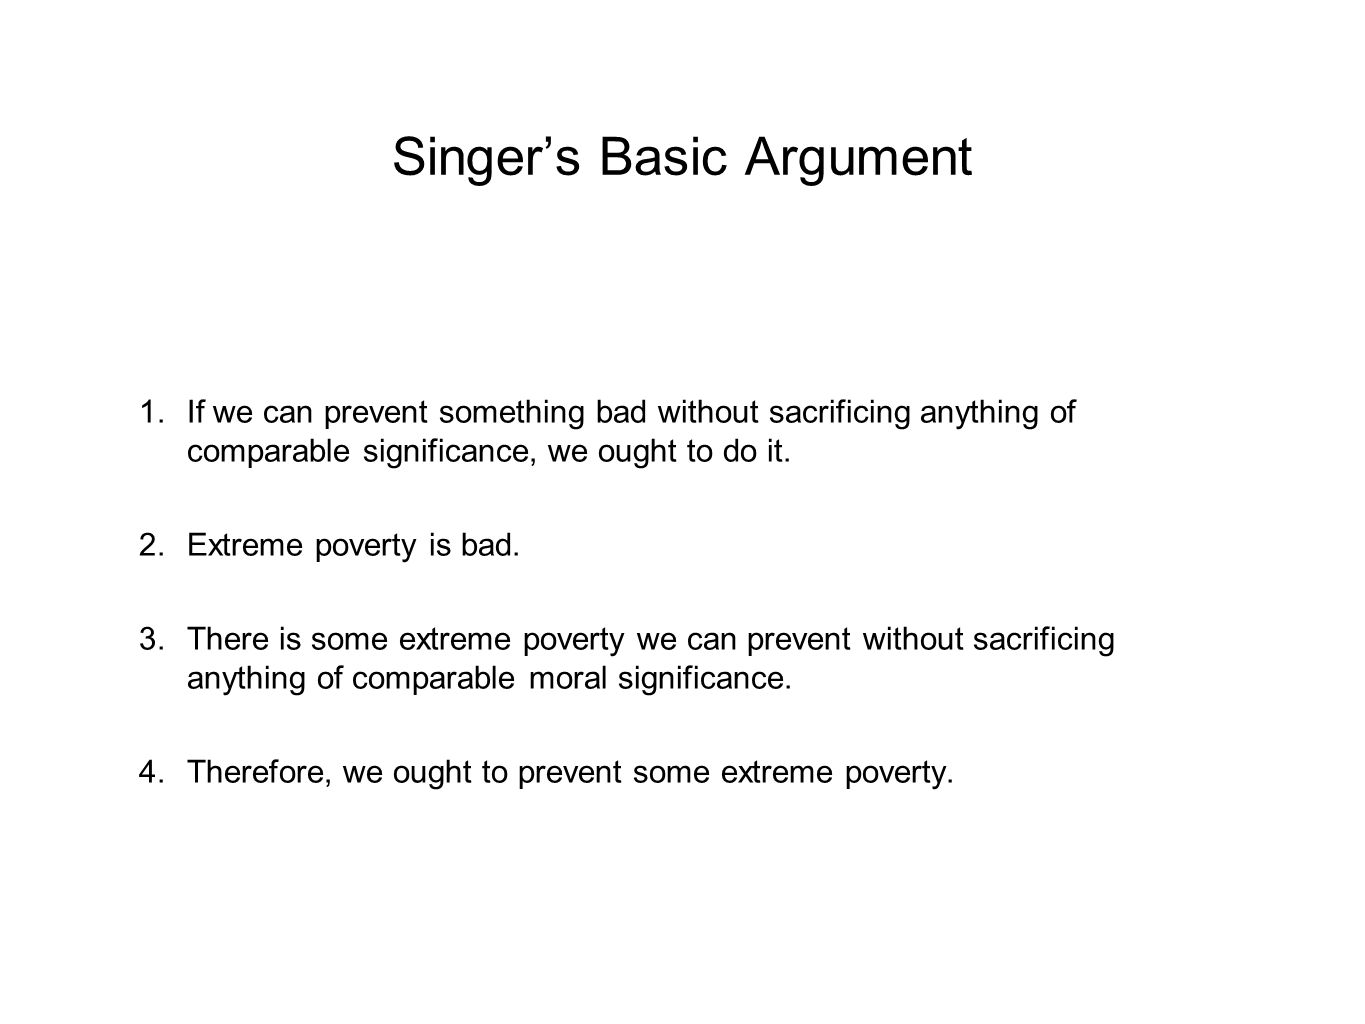 Singer's Basic Argument